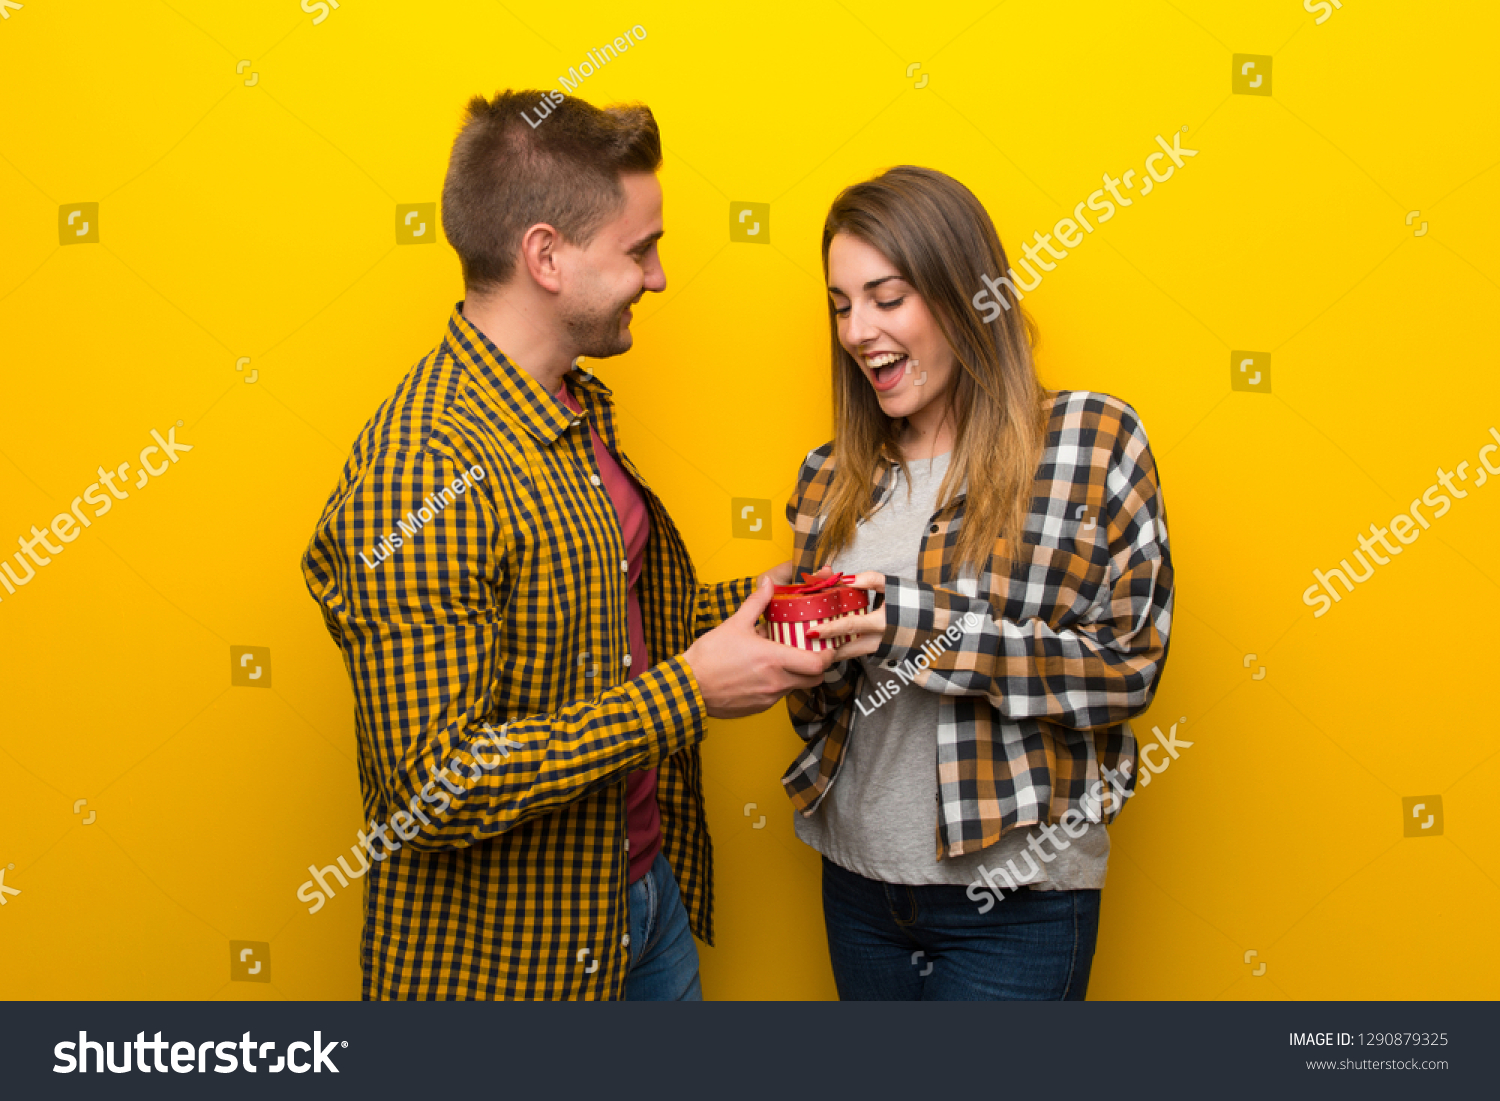 Couple Valentine Day Holding Gift Box People Beauty